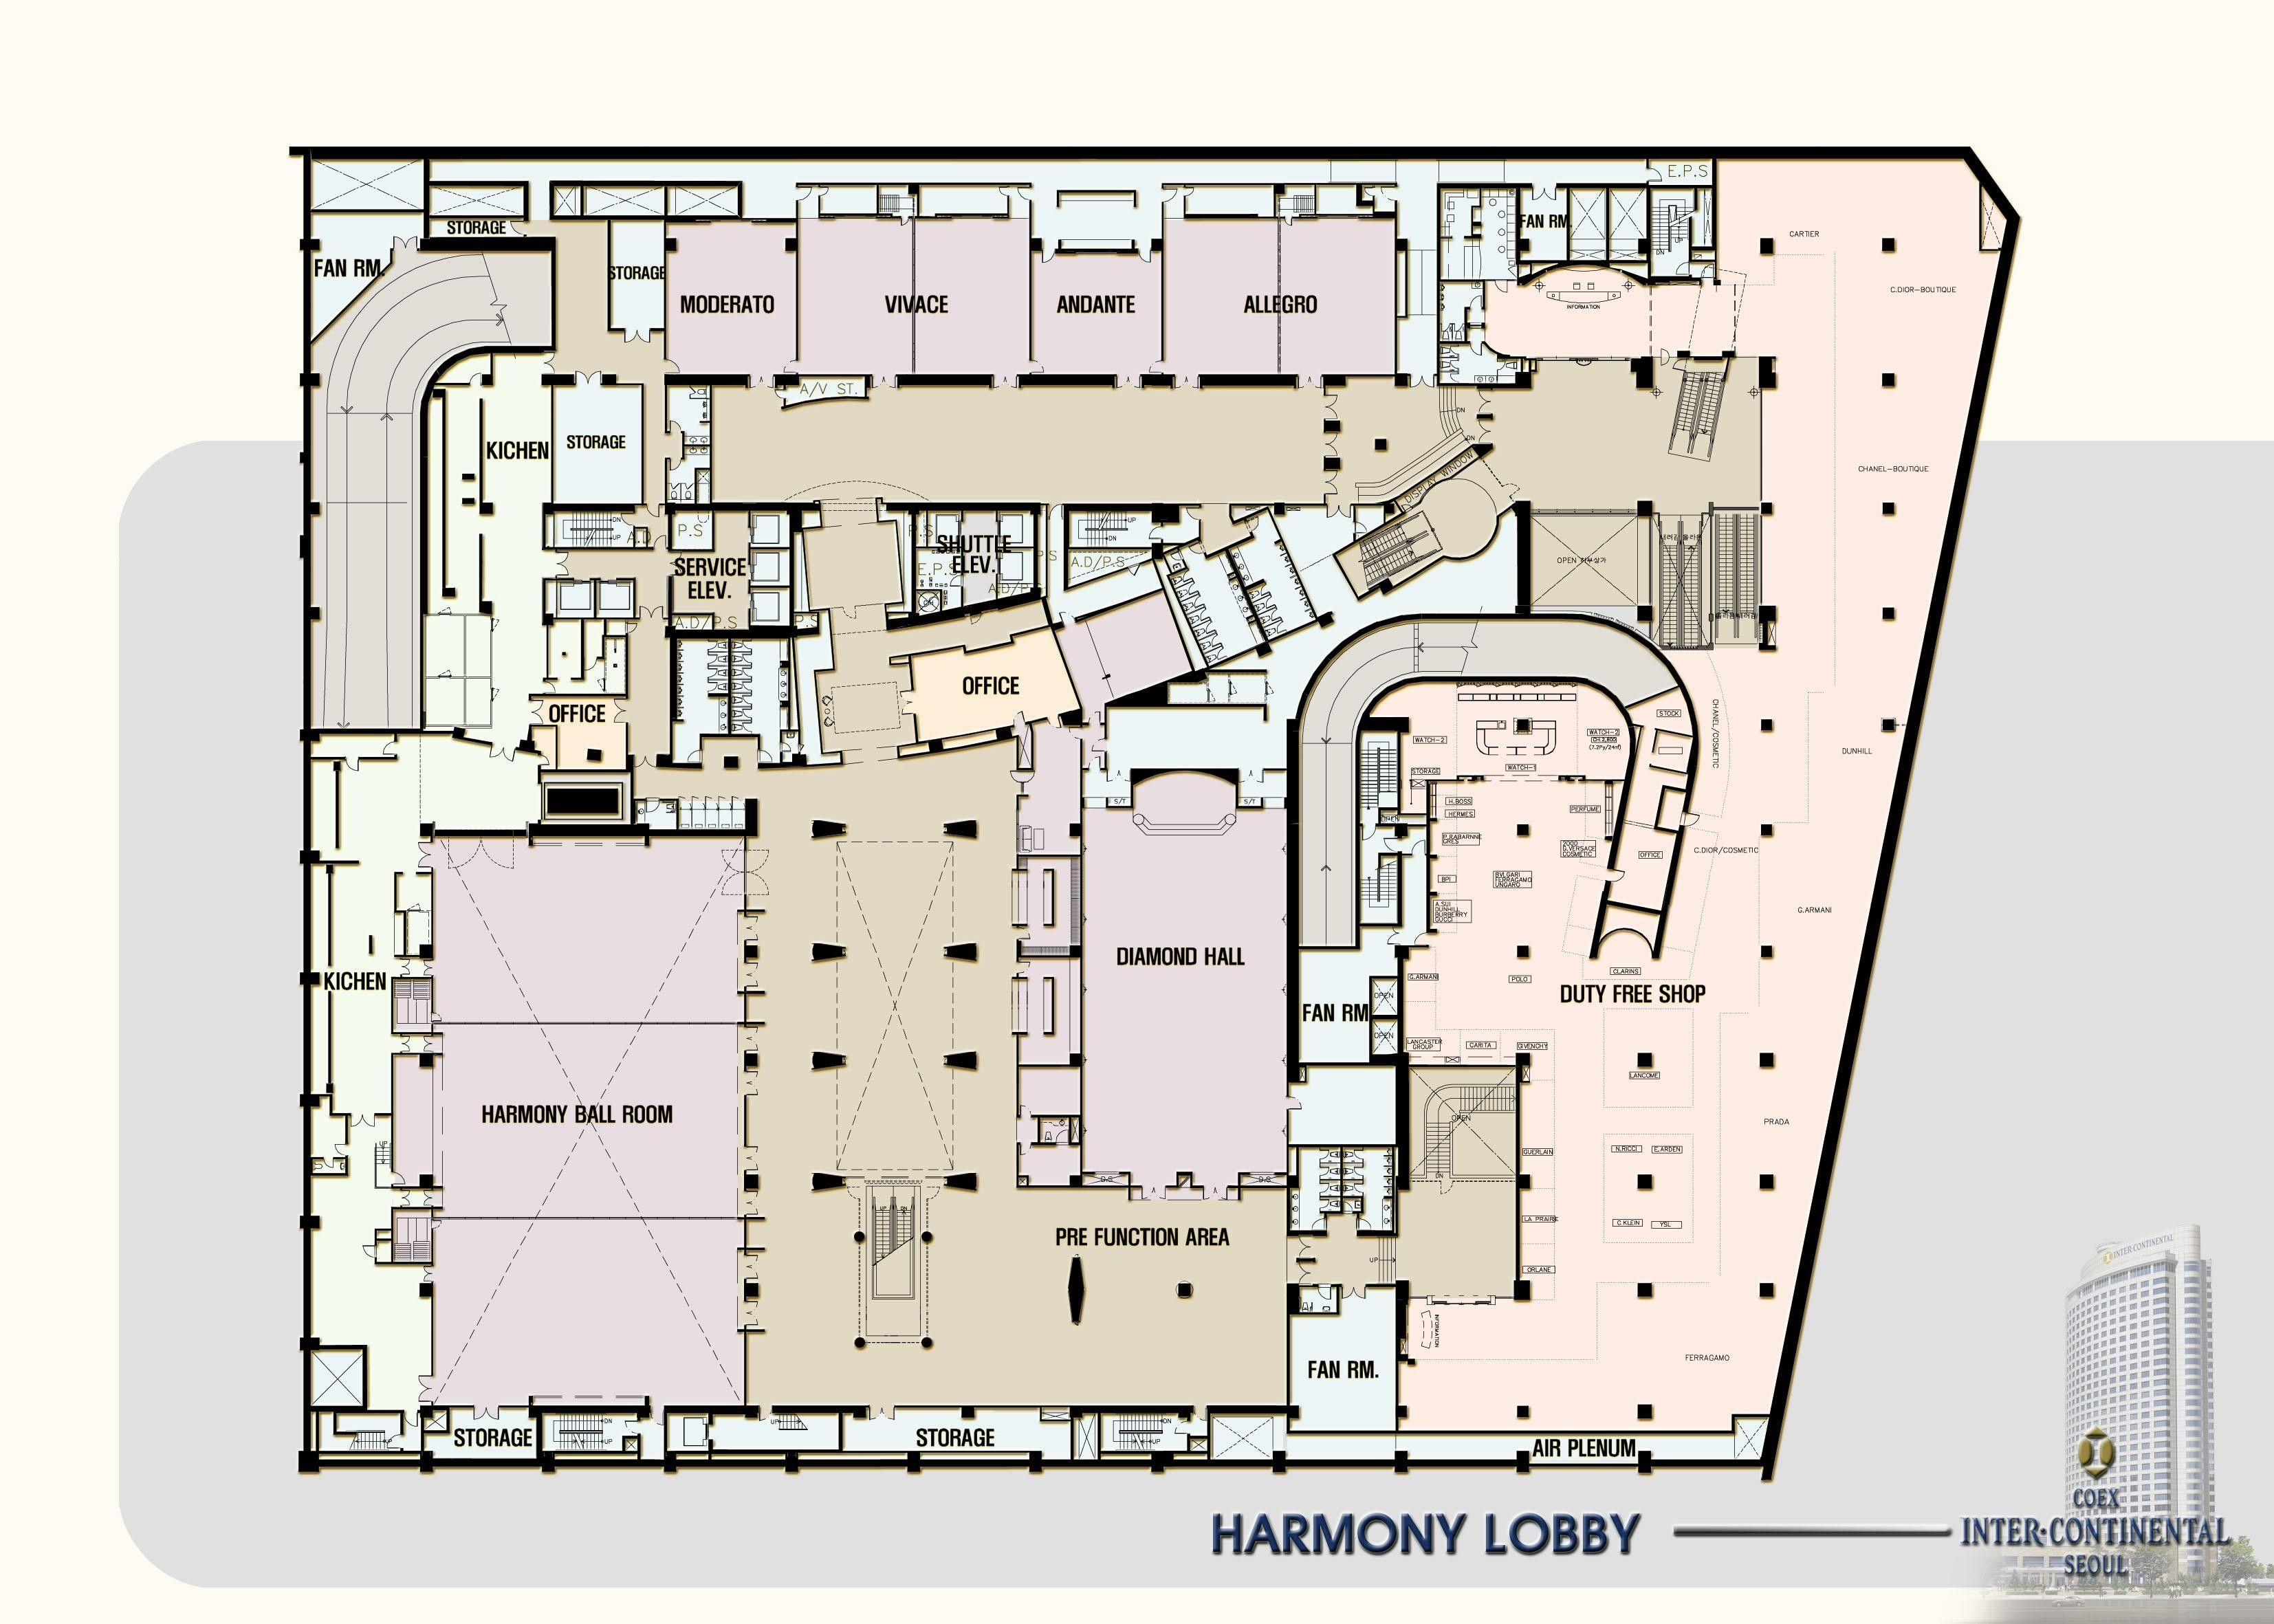 Hotel lobby floor plan google search hotel design for Hotel design layout